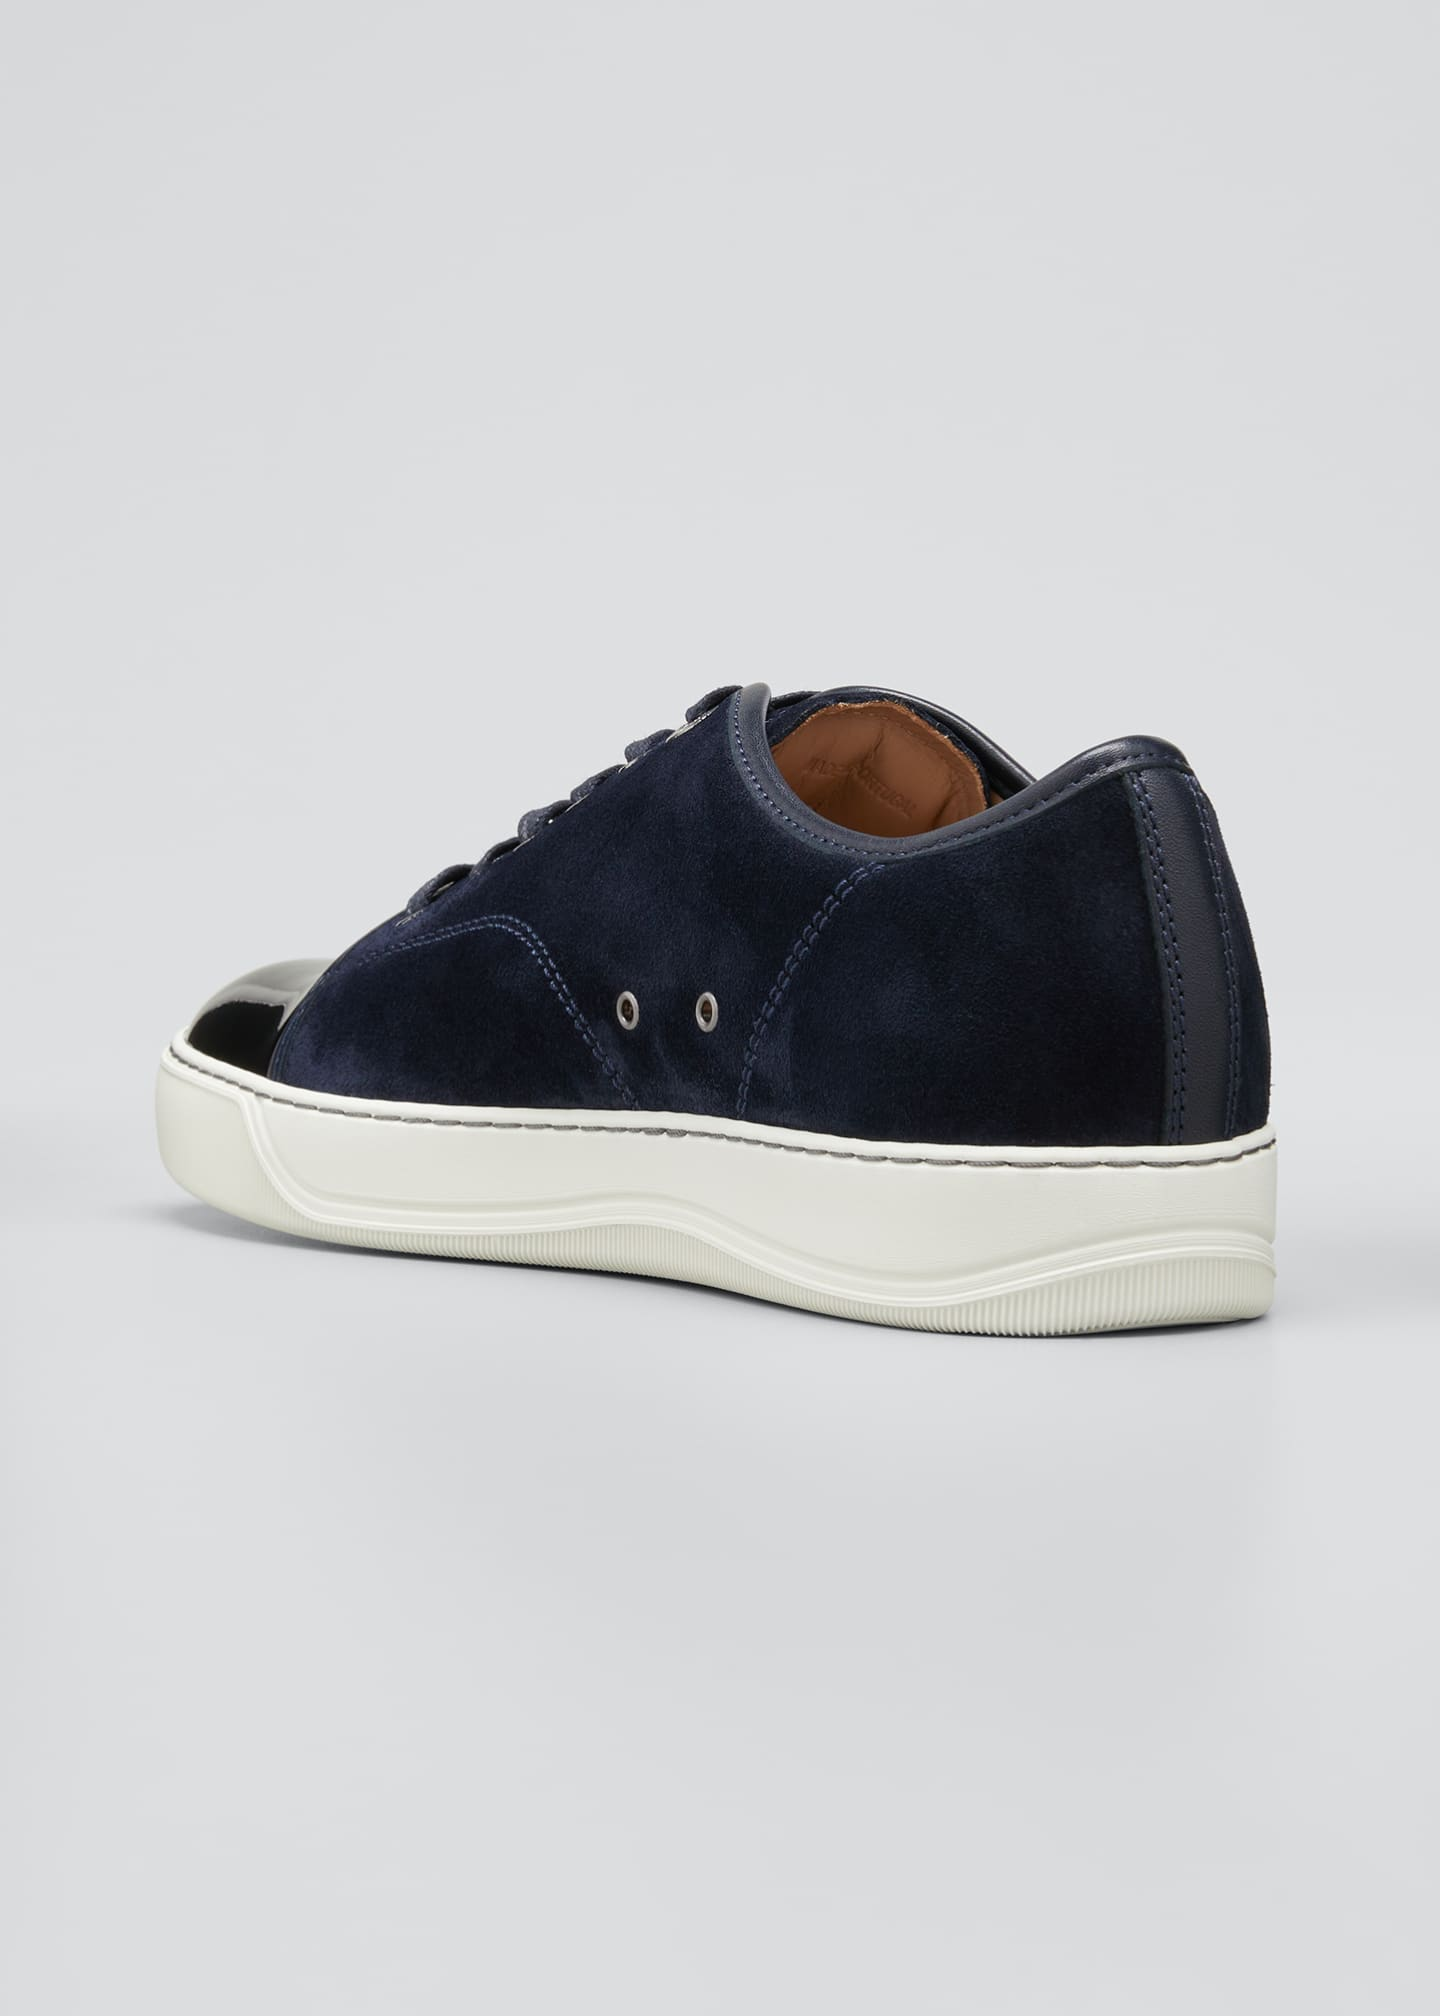 Image 2 of 3: Men's Patent Leather/Suede Low-Top Sneakers